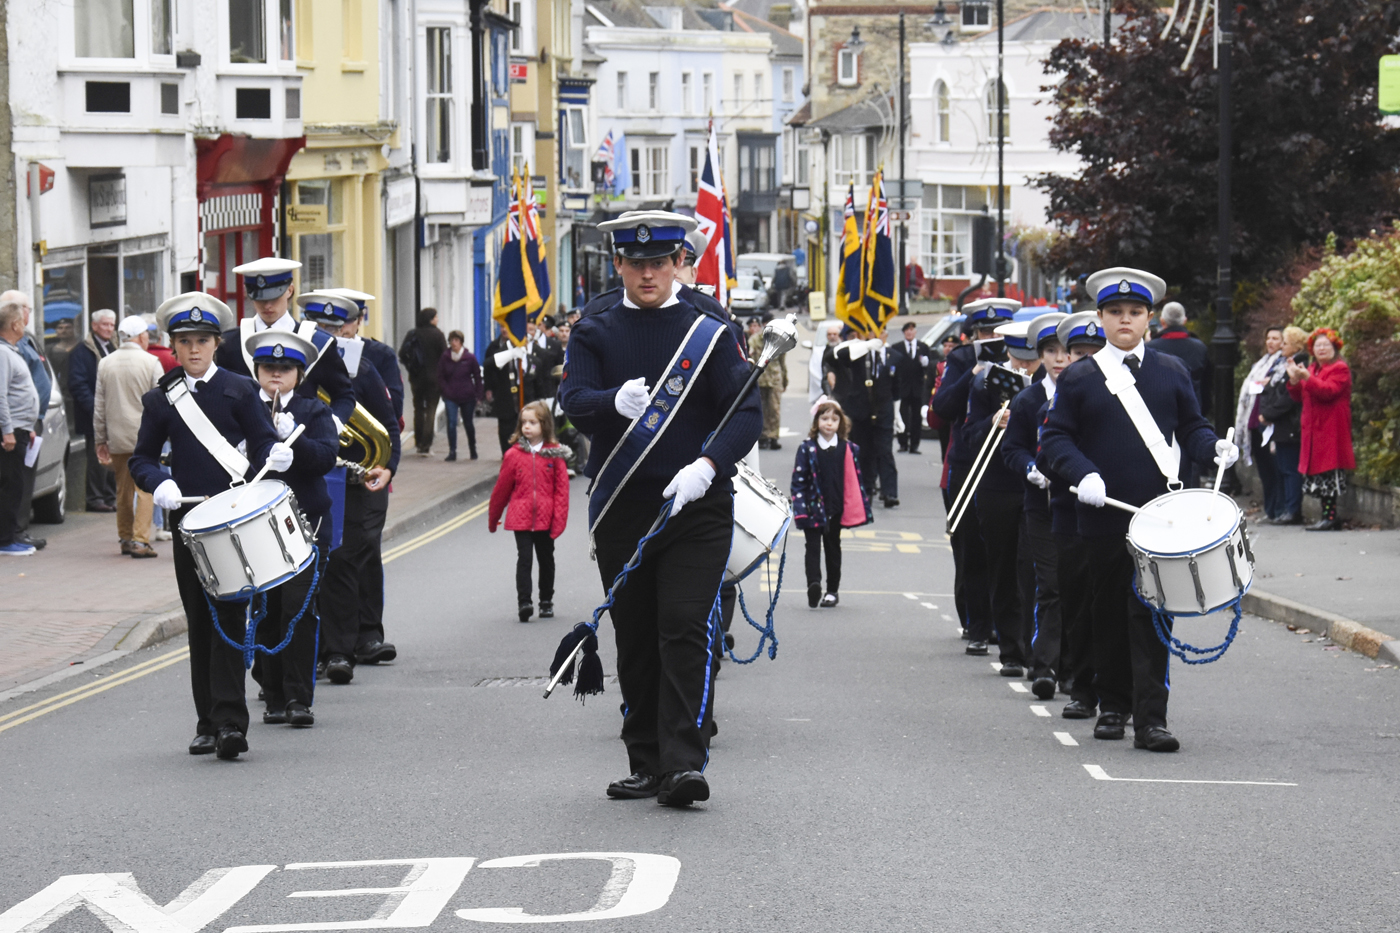 20161029_stp_3572-hss-launch-of-the-poppy-appeal-2016-in-ventnor